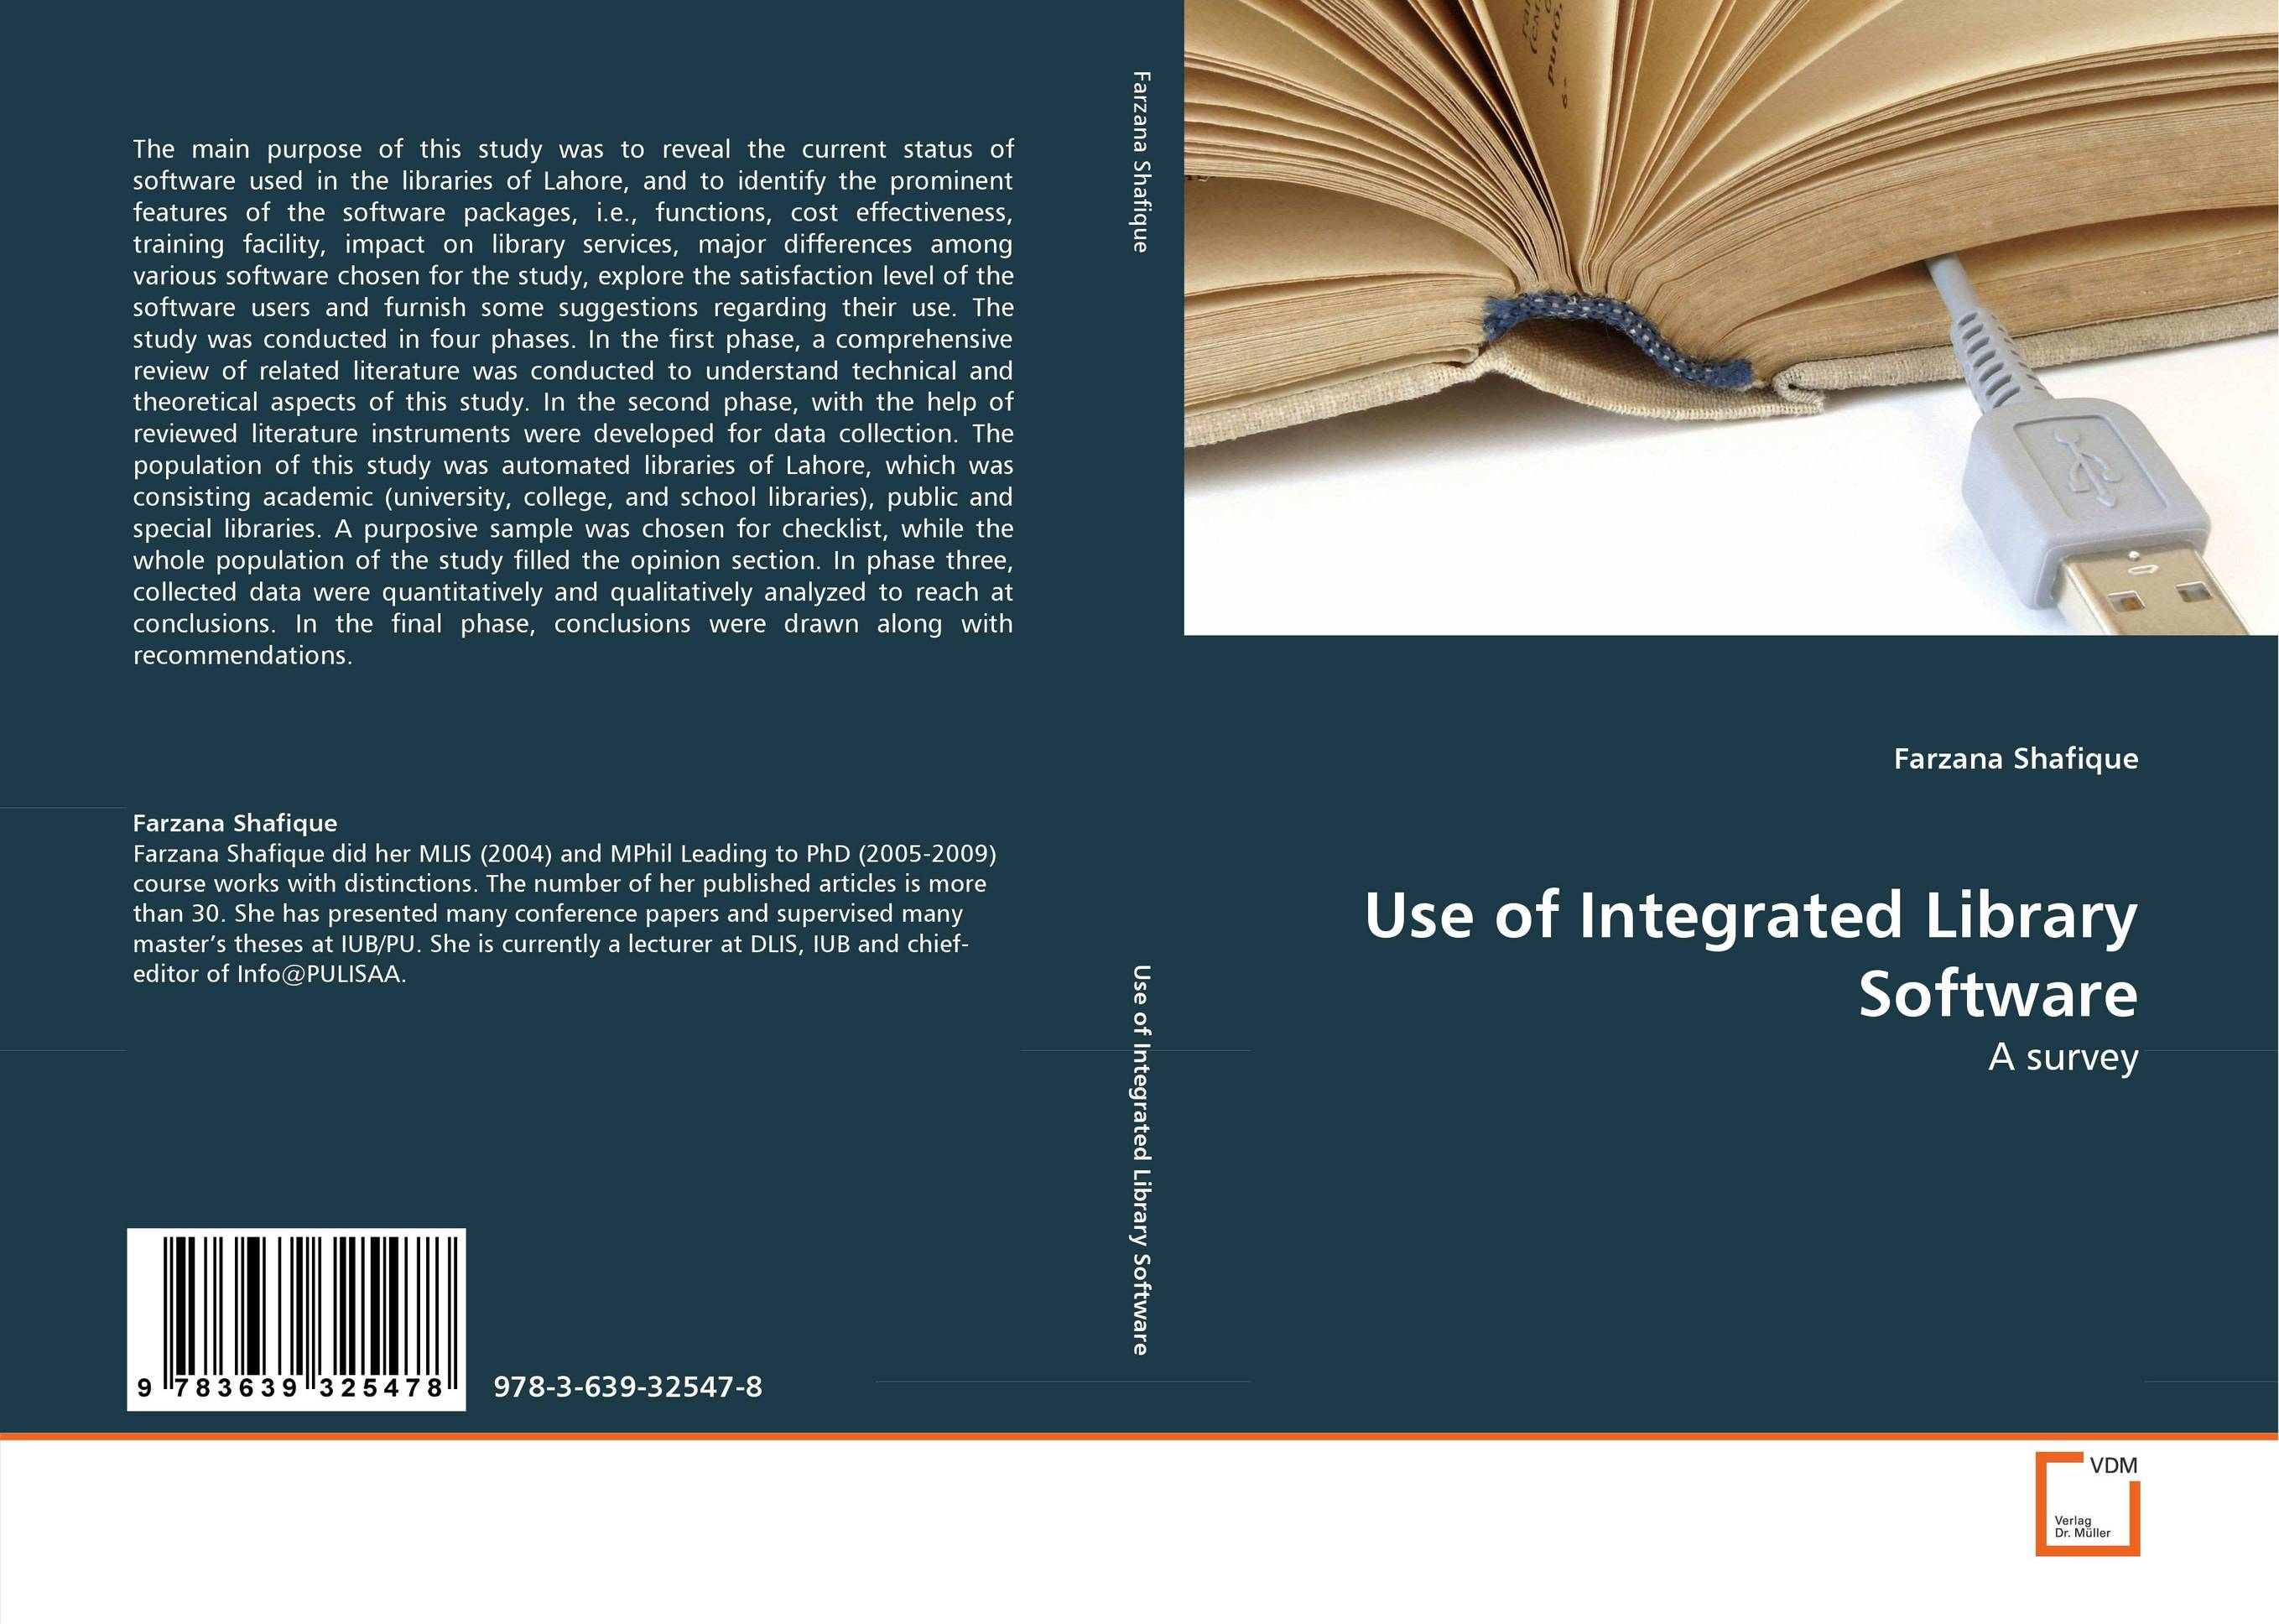 Use of Integrated Library Software library software migration and its effectiveness in selected libraries